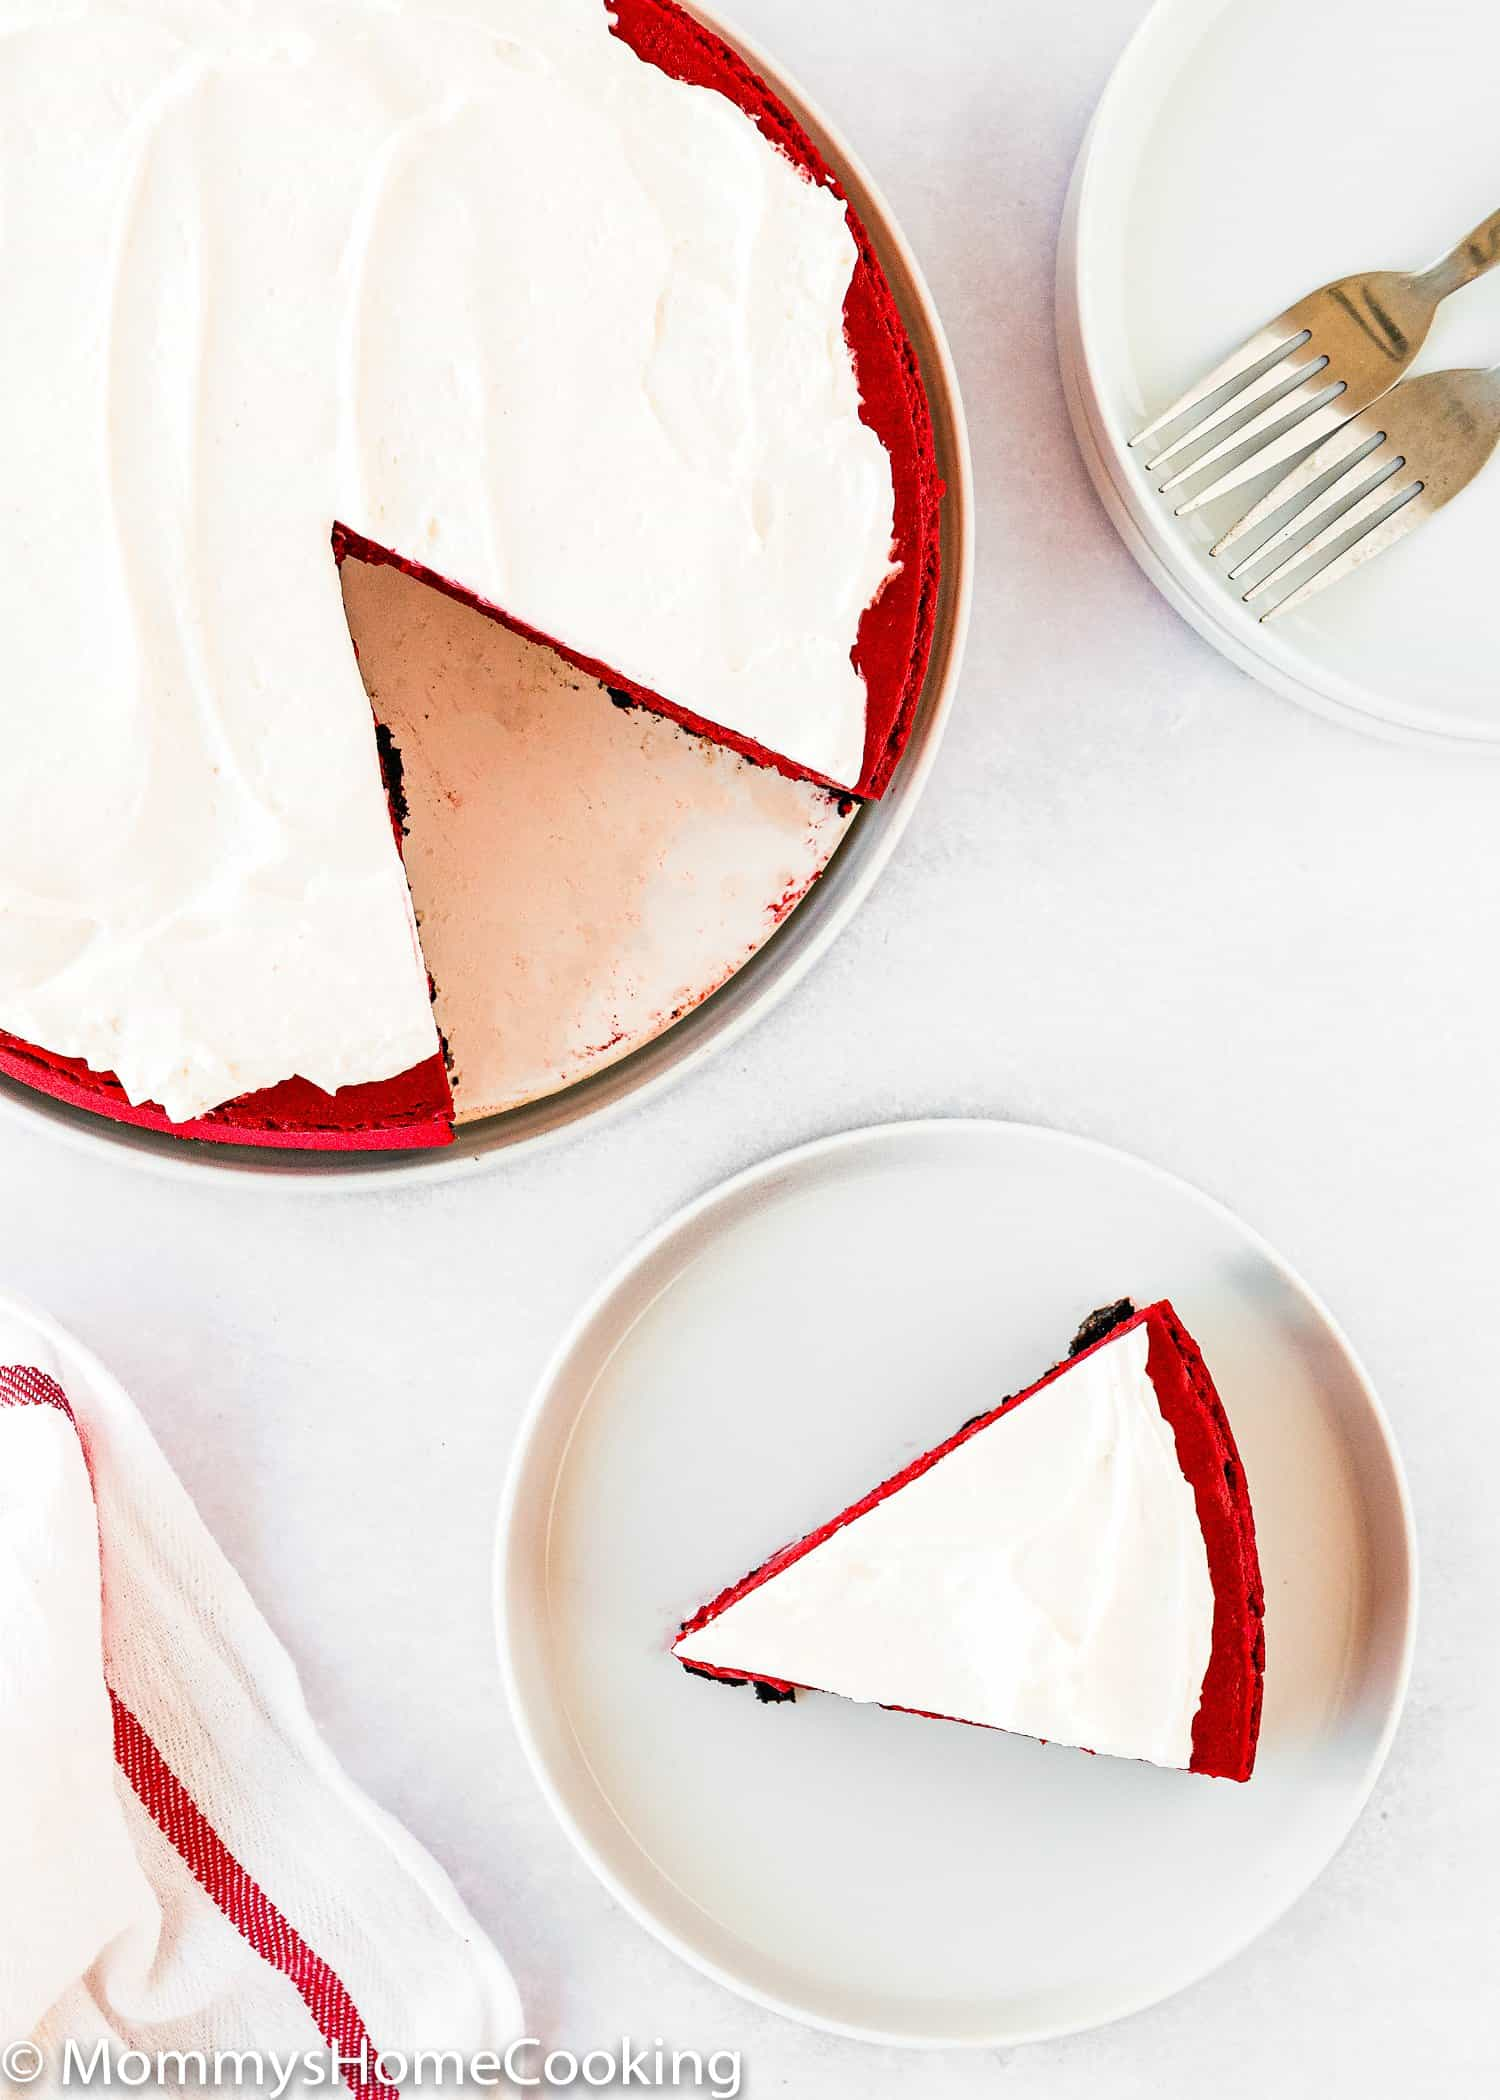 cut Eggless Red Velvet Cheesecake over a white surface